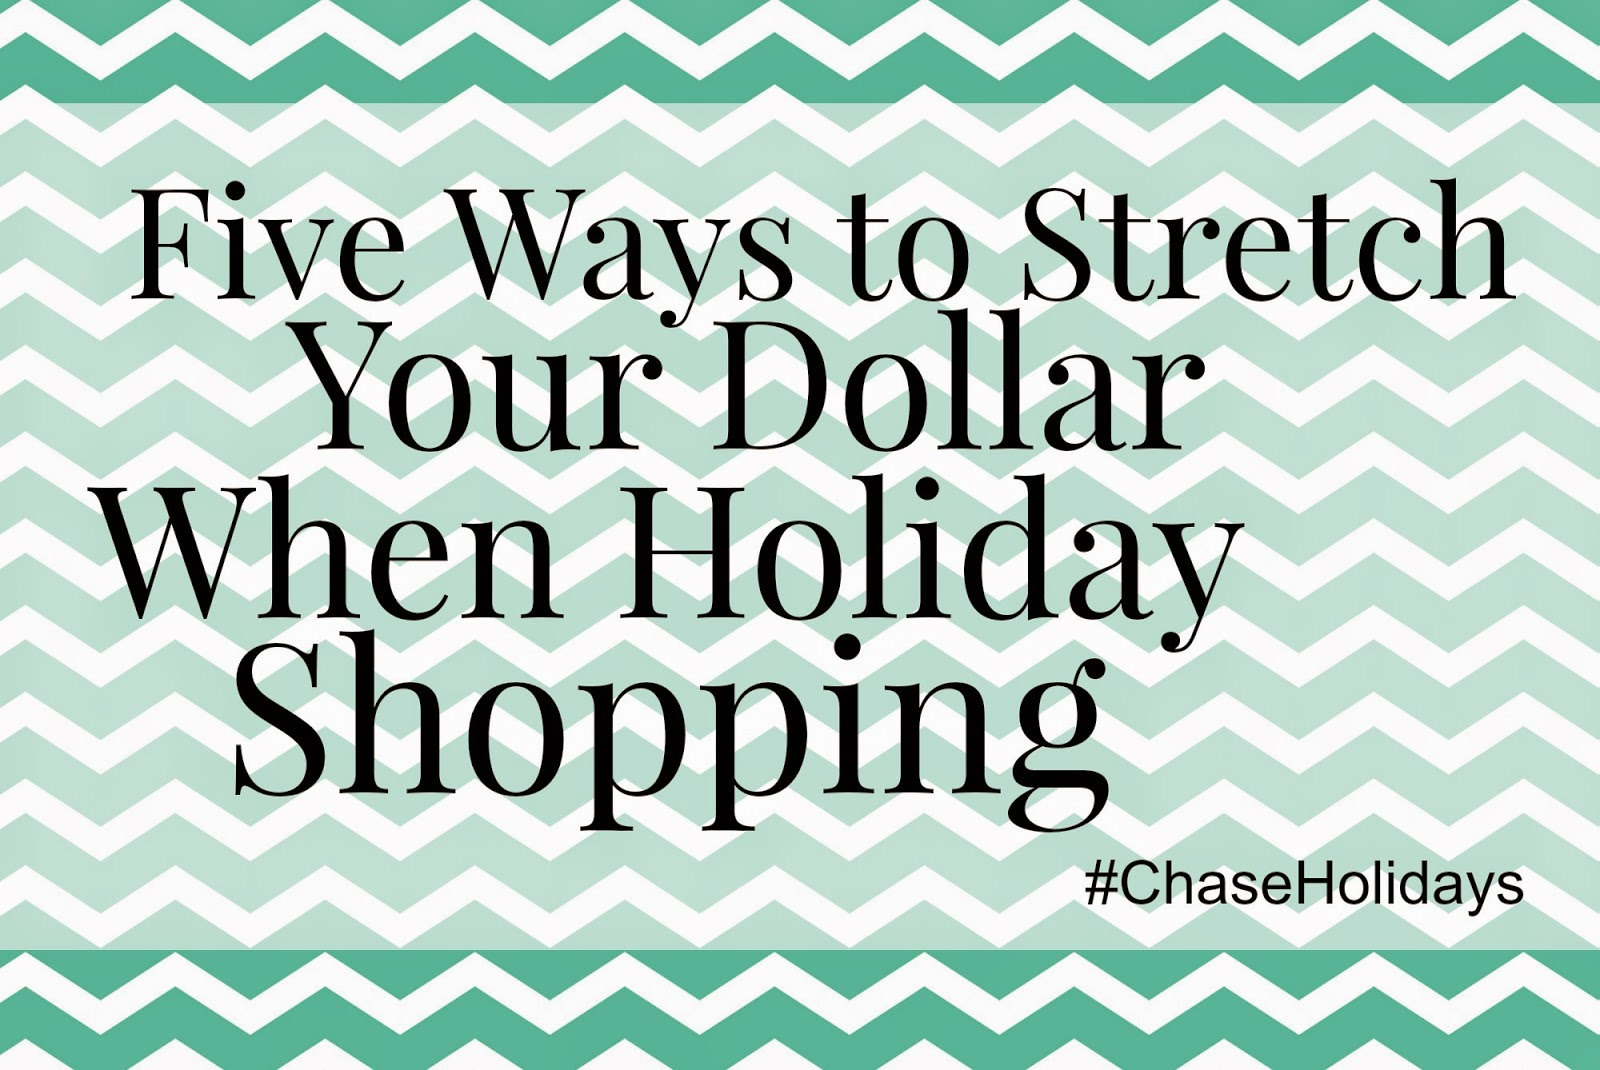 Five Ways to Stretch Your Dollar When Holiday Shopping #ChaseHolidays